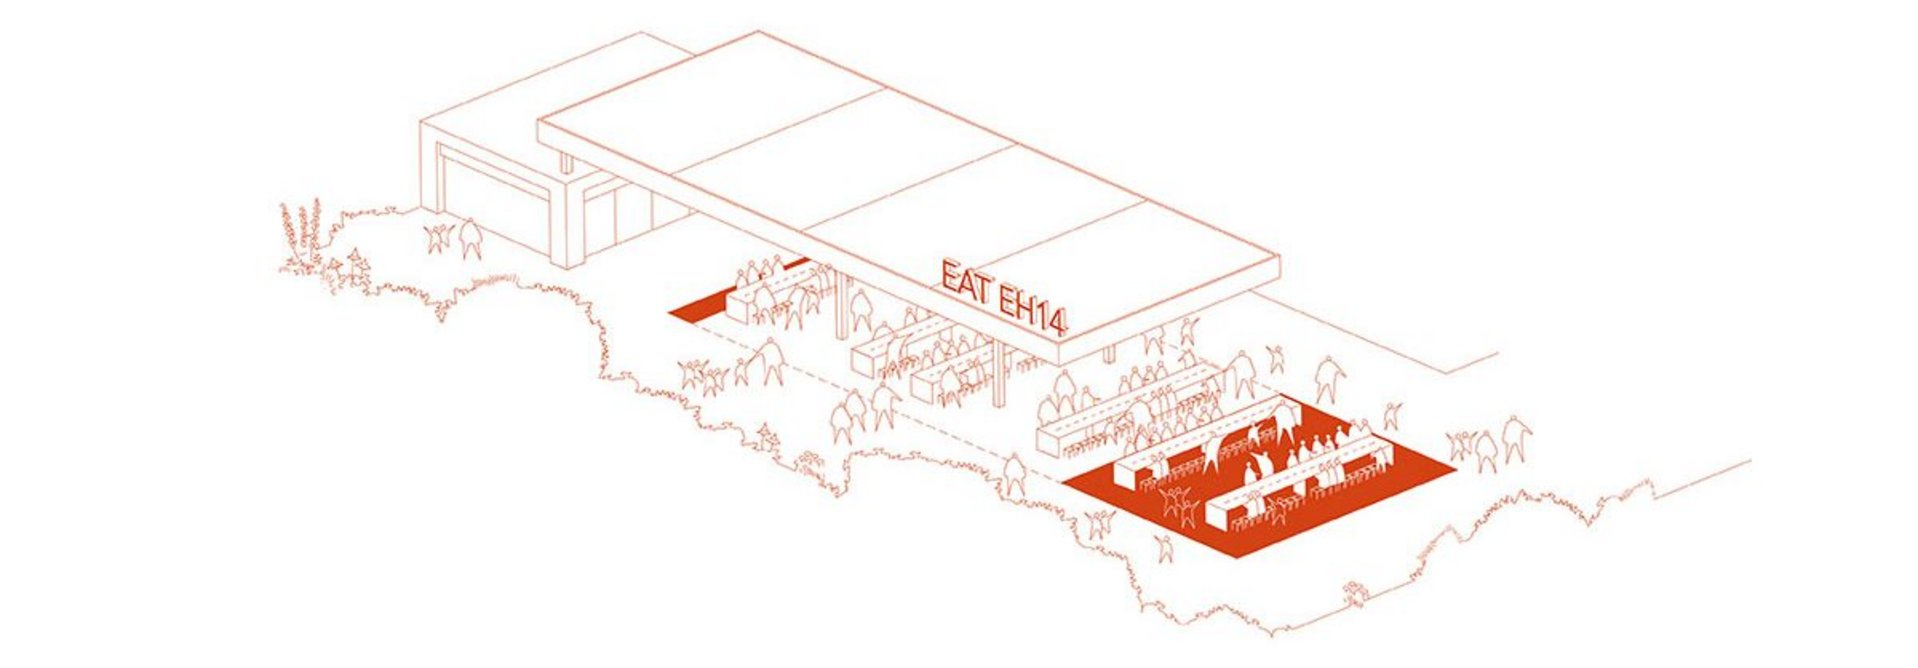 EAT EH14 community restaurant proposed for Wester Hailes. The idea was envisaged by citizens Chuks Ododo and Ilisapeci Rawalai with Nicky Thomson and Rowan MacKinnon-Pryde of Studio Niro as part of What if…?/Scotland. Image Courtesy of Studio Niro